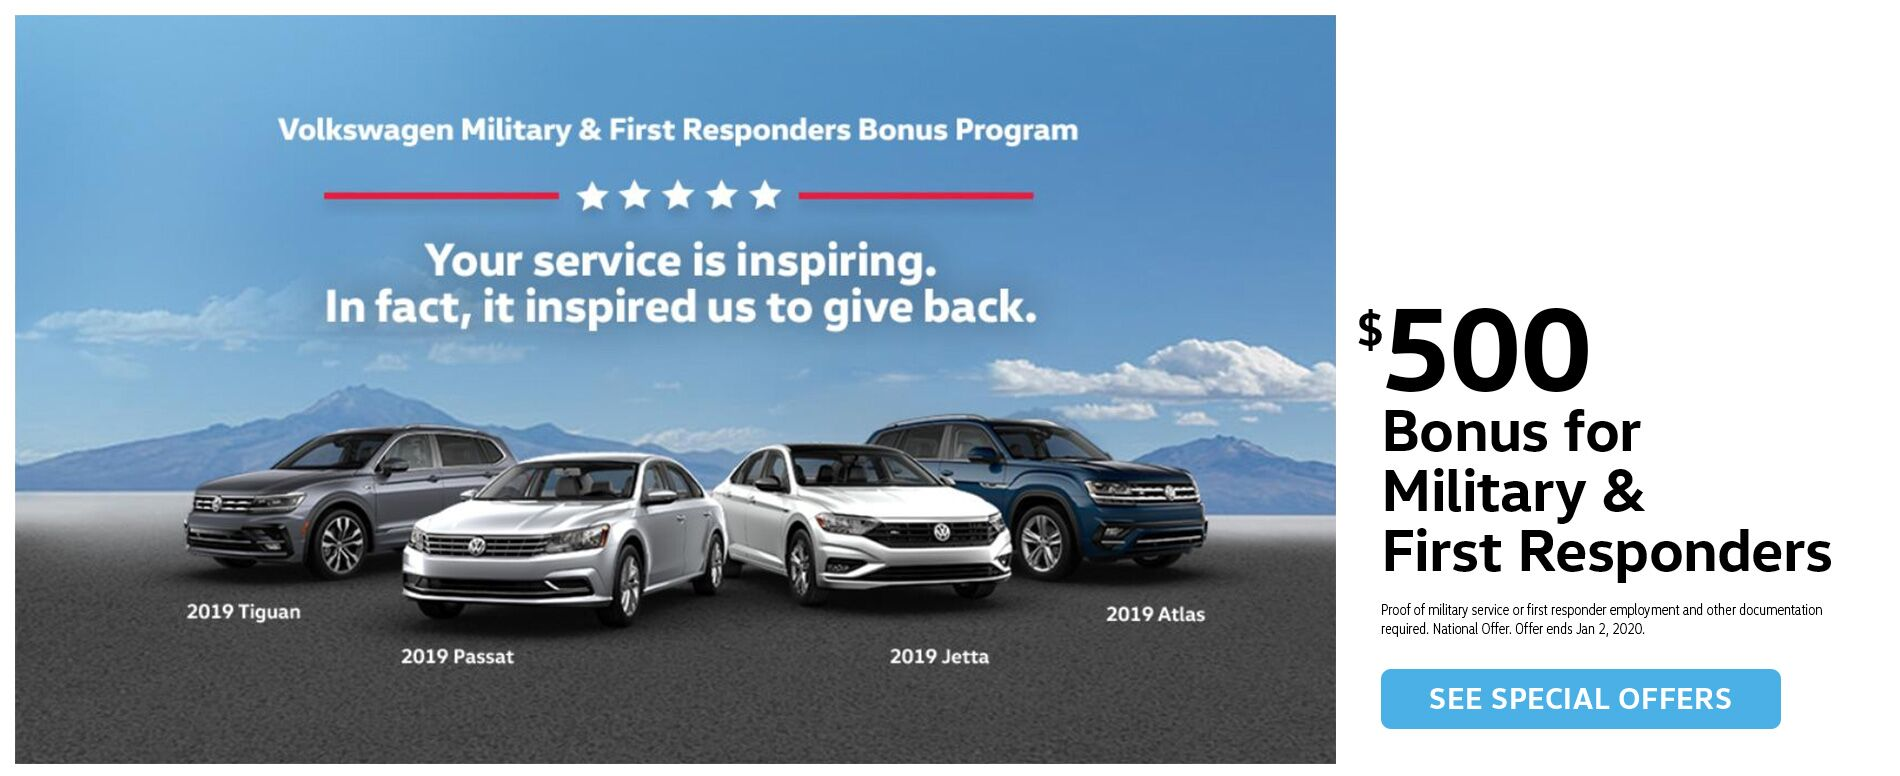 New Volkswagen Military Bonus